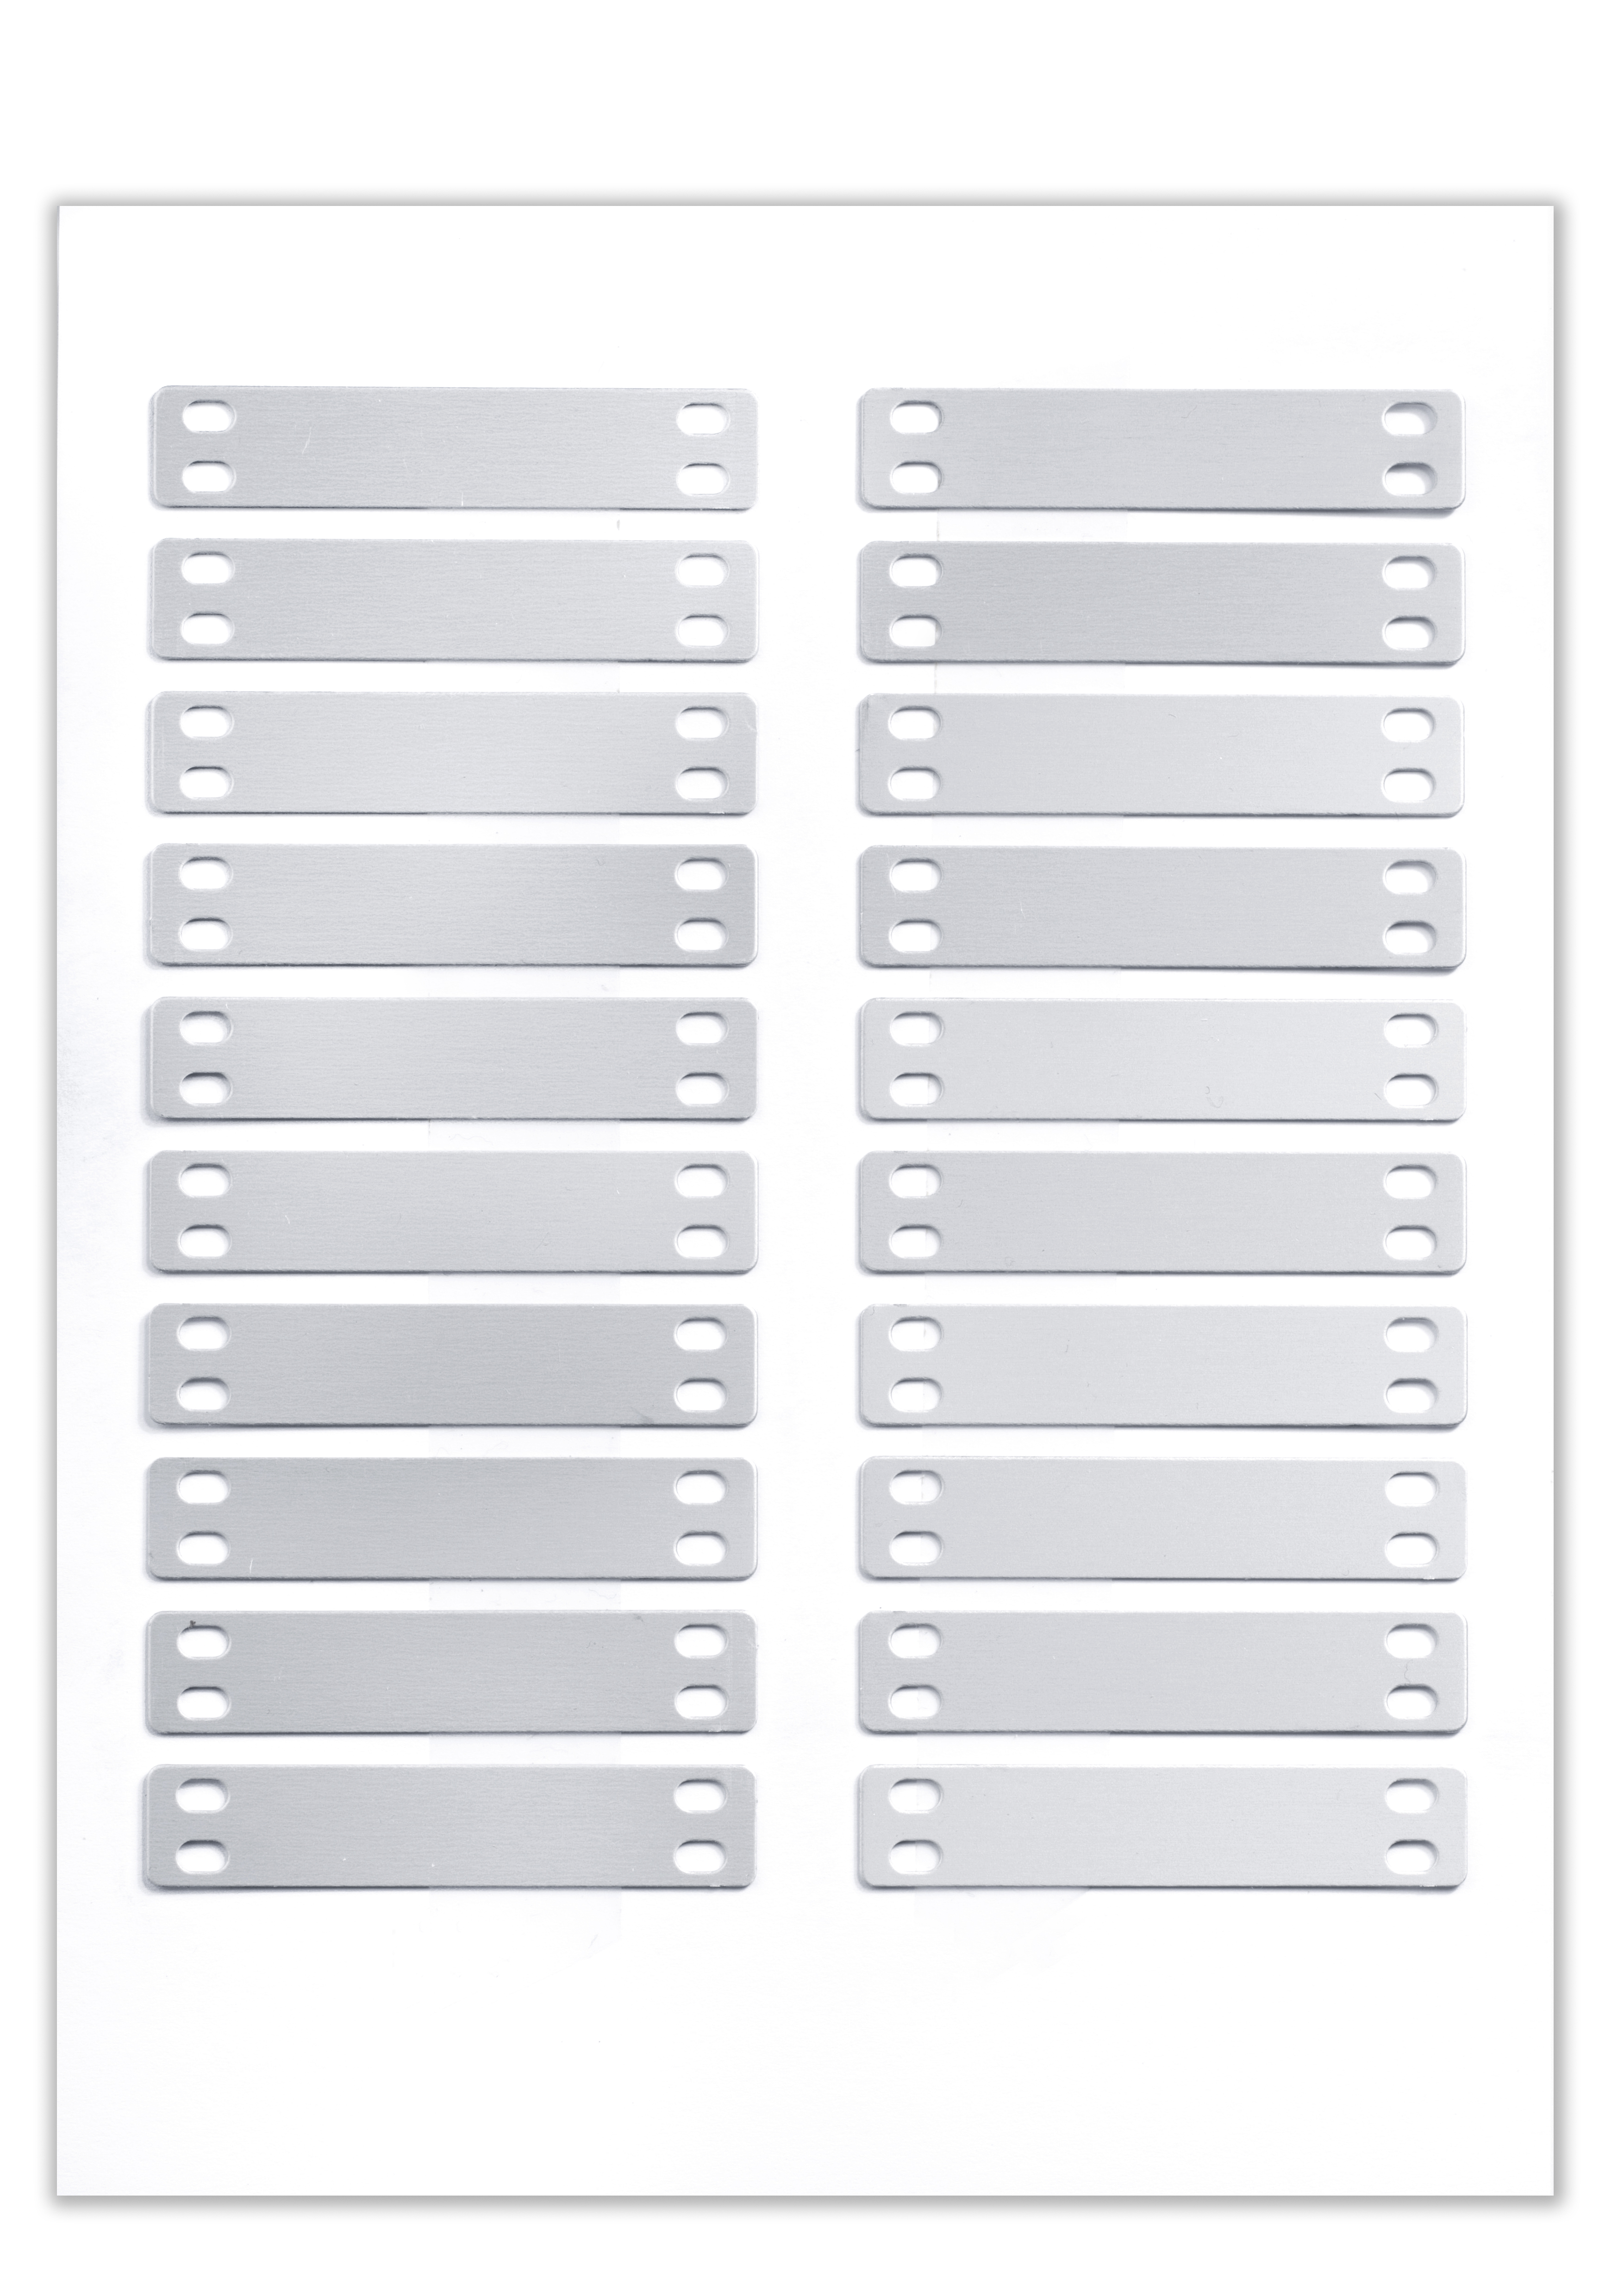 printolux-label-sheet-12x60-cable-tags